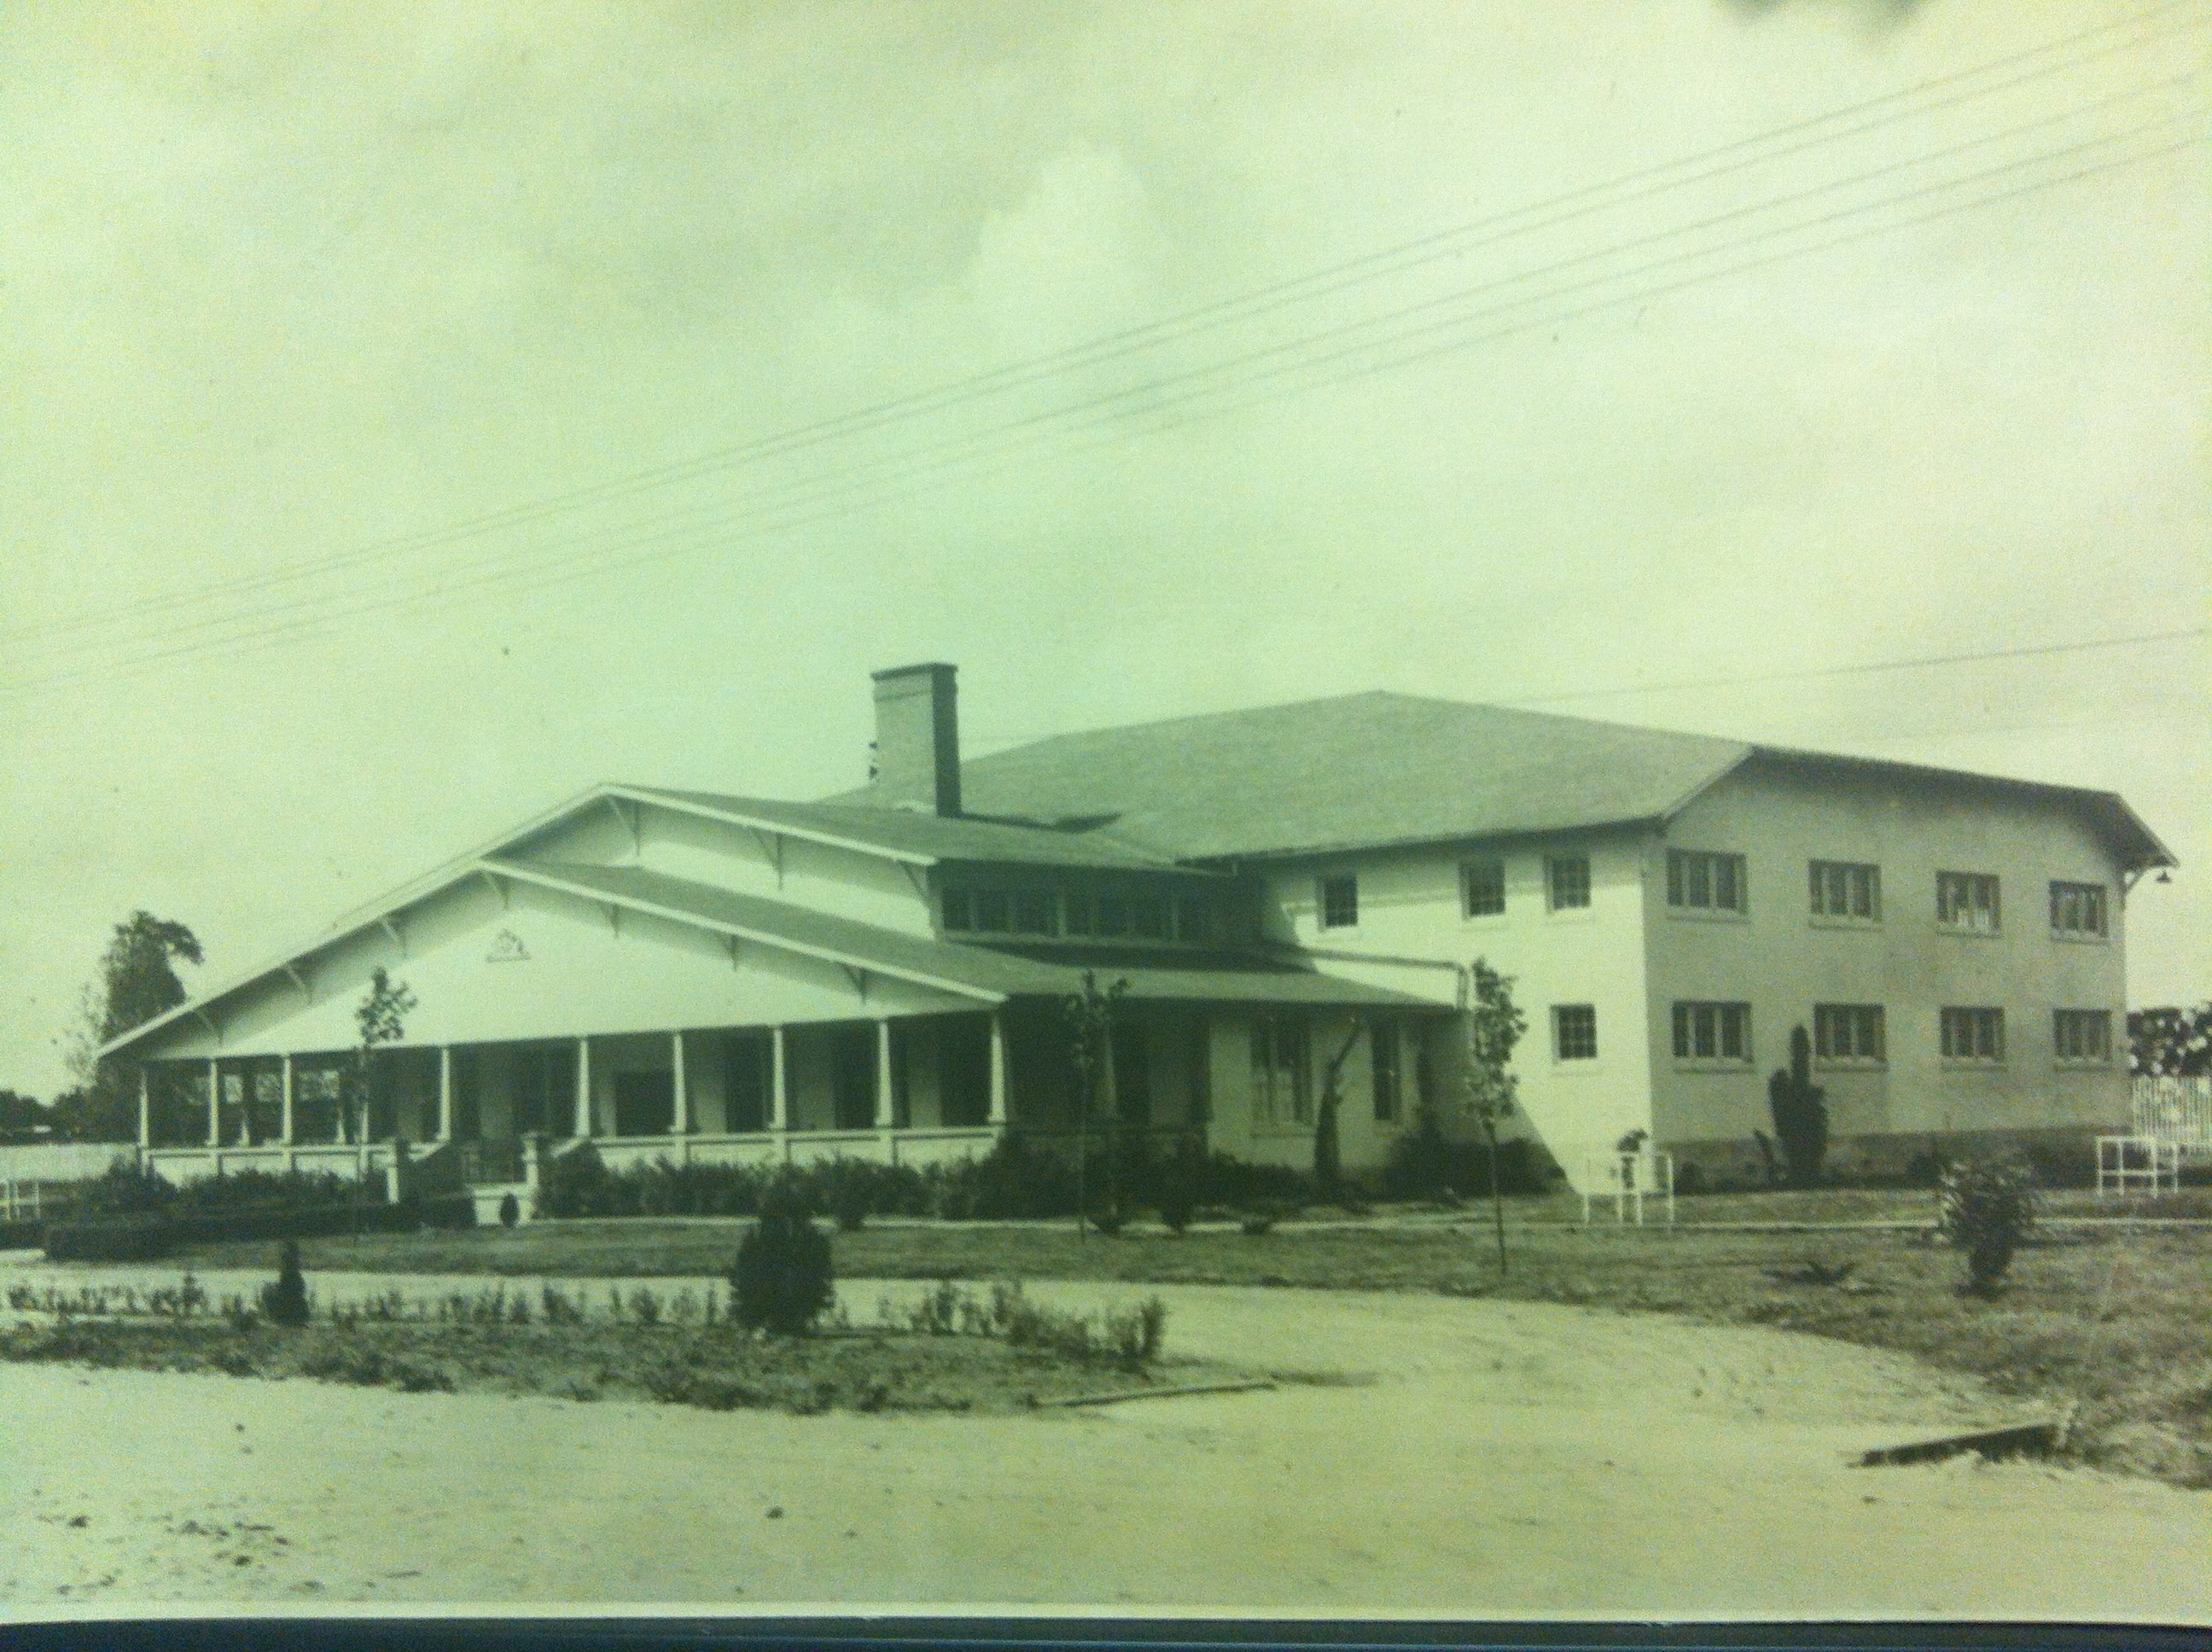 Old picture of the historic Community House in its early years